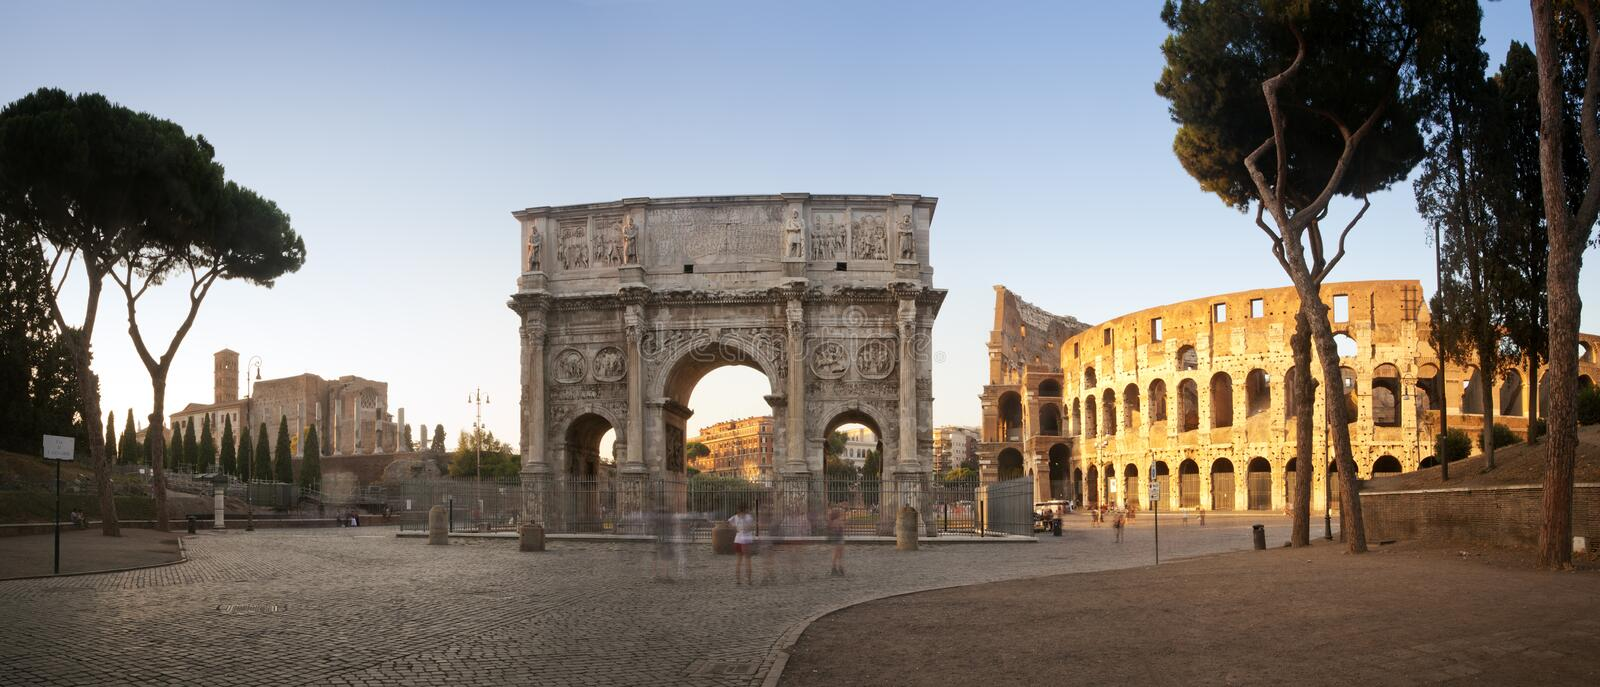 Panorama of the Colosseum and Arch of Constantine royalty free stock images